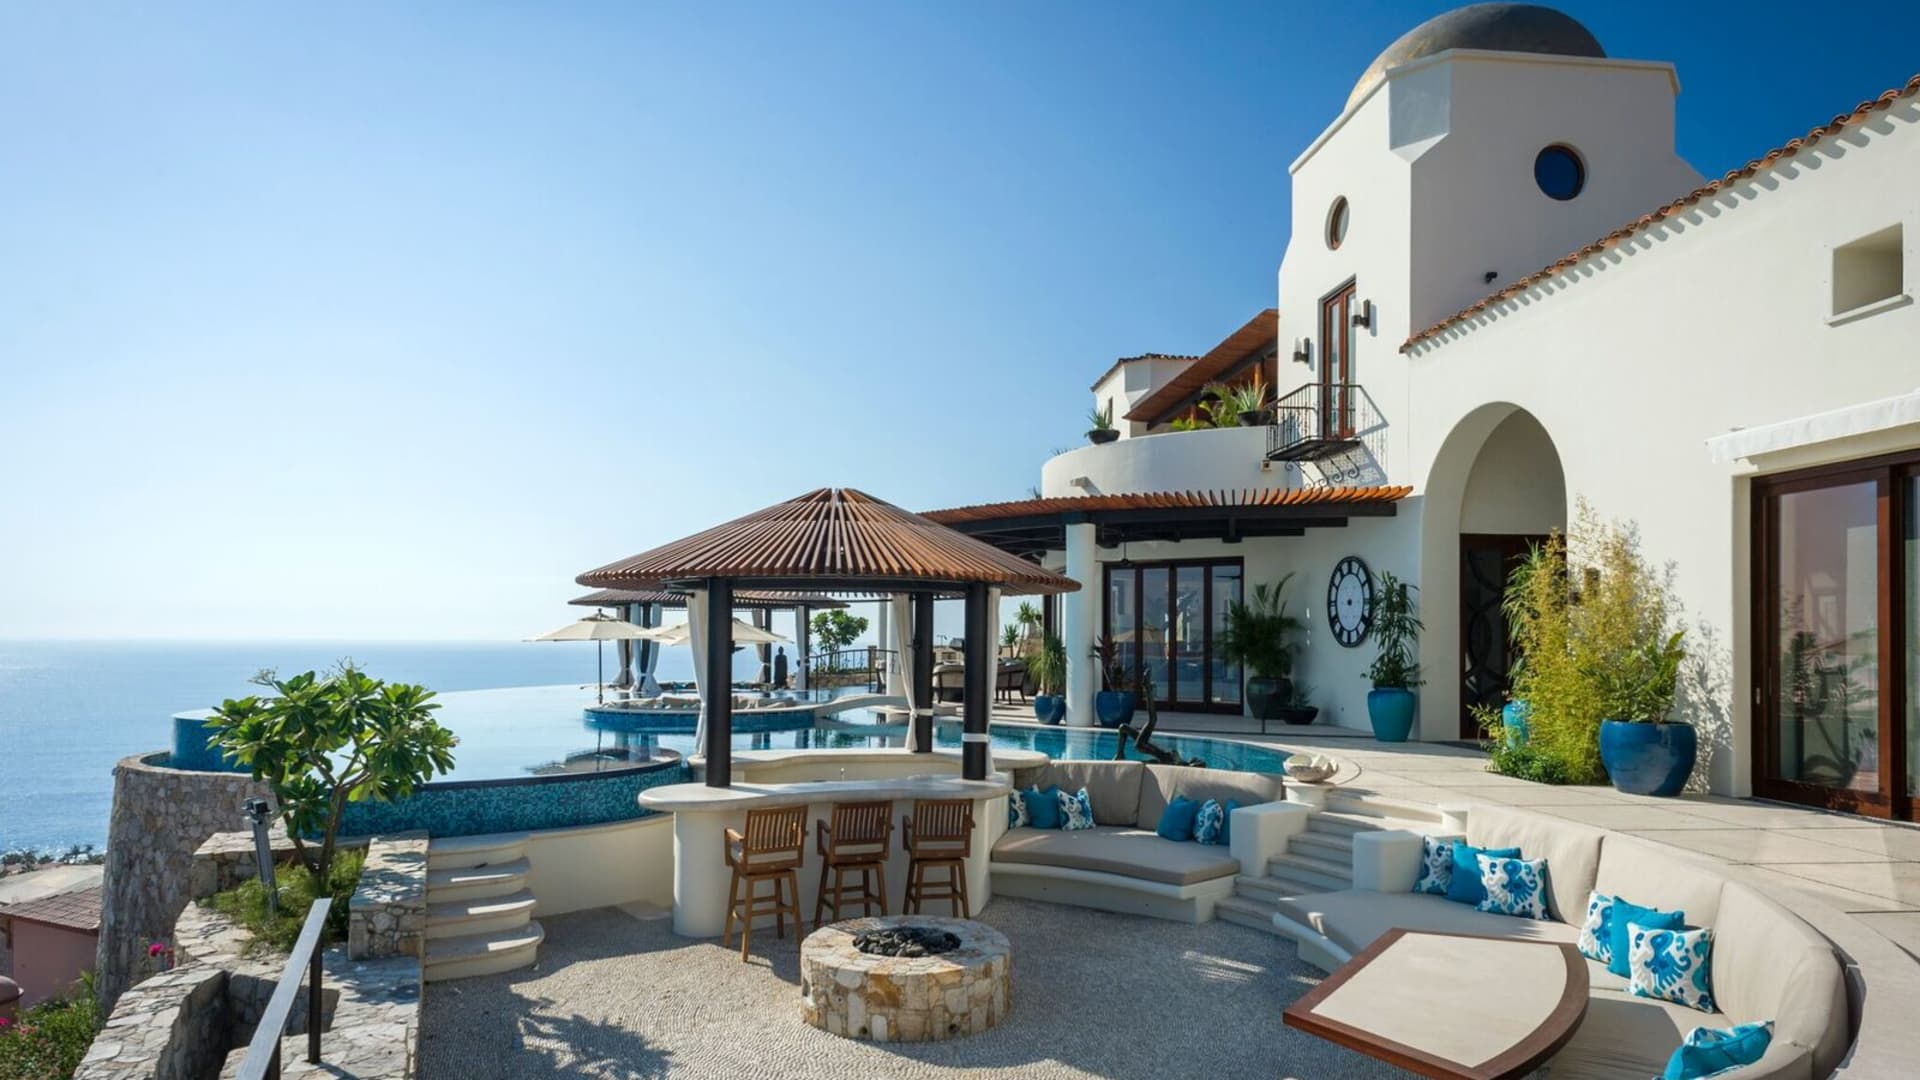 A Chairman's Collection selection, Casa Fryzer in Los Cabos, Mexico is said to have hosted celebrity entertainers, royalty and Fortune 500 CEOs.